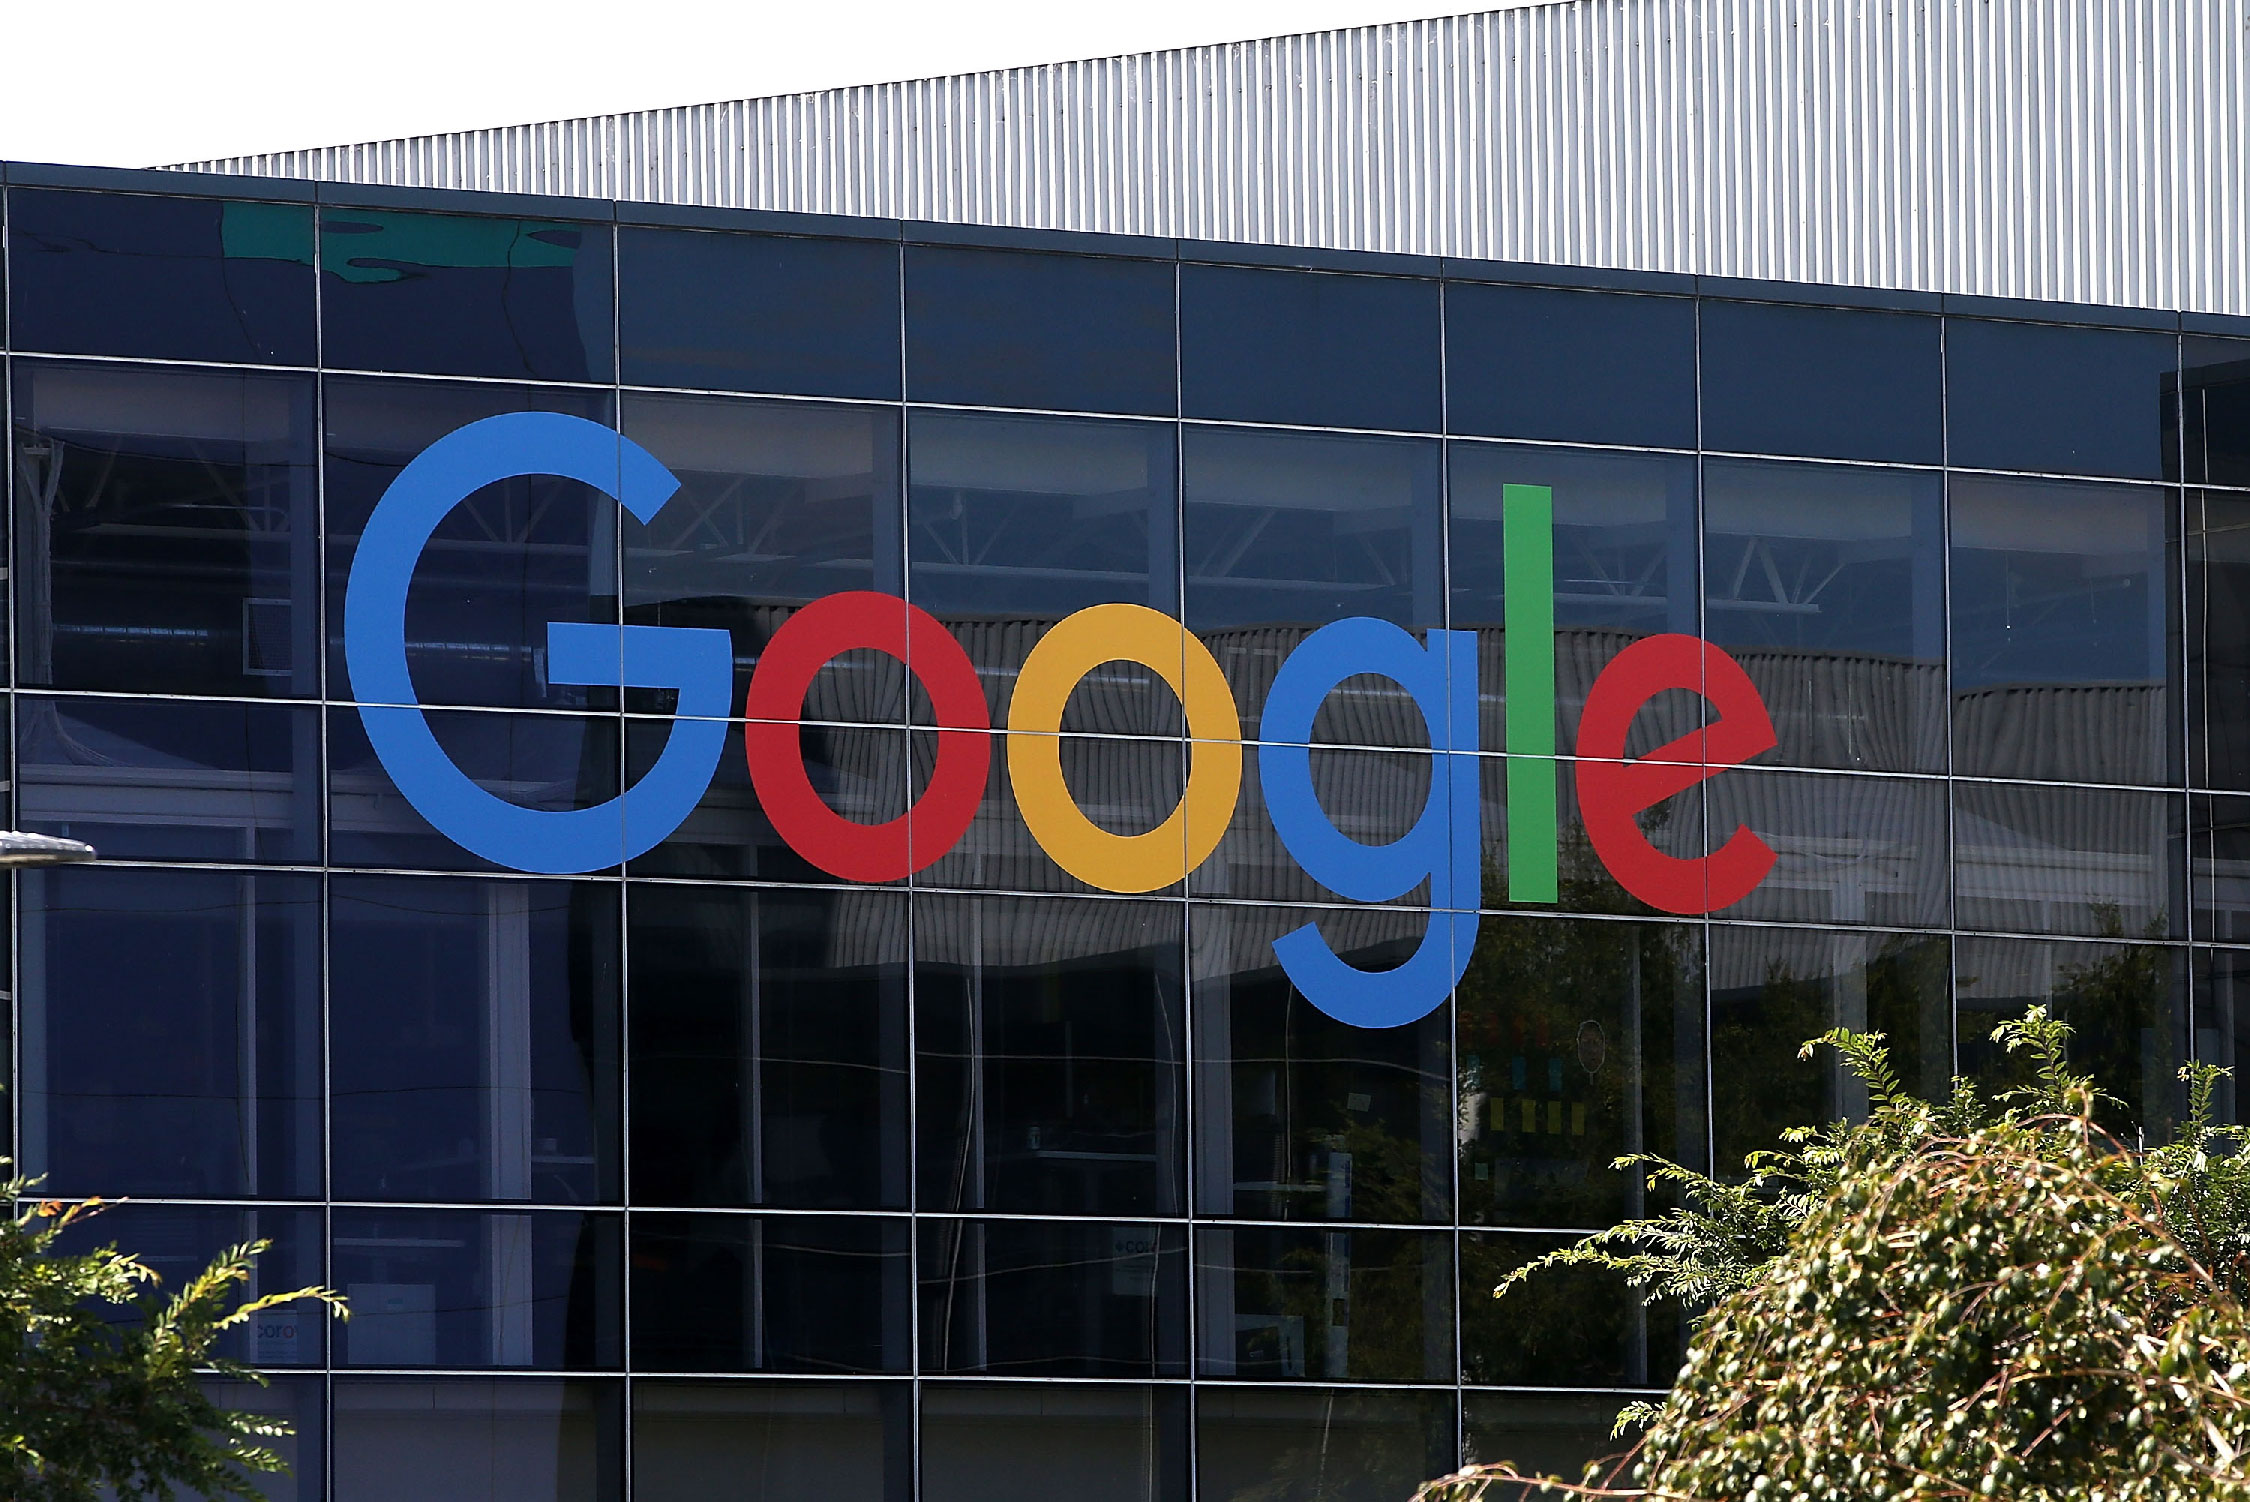 Android Users: Here's the update on Google's policies in the EU to avoid antitrust scrutiny and a billion-dollar fine